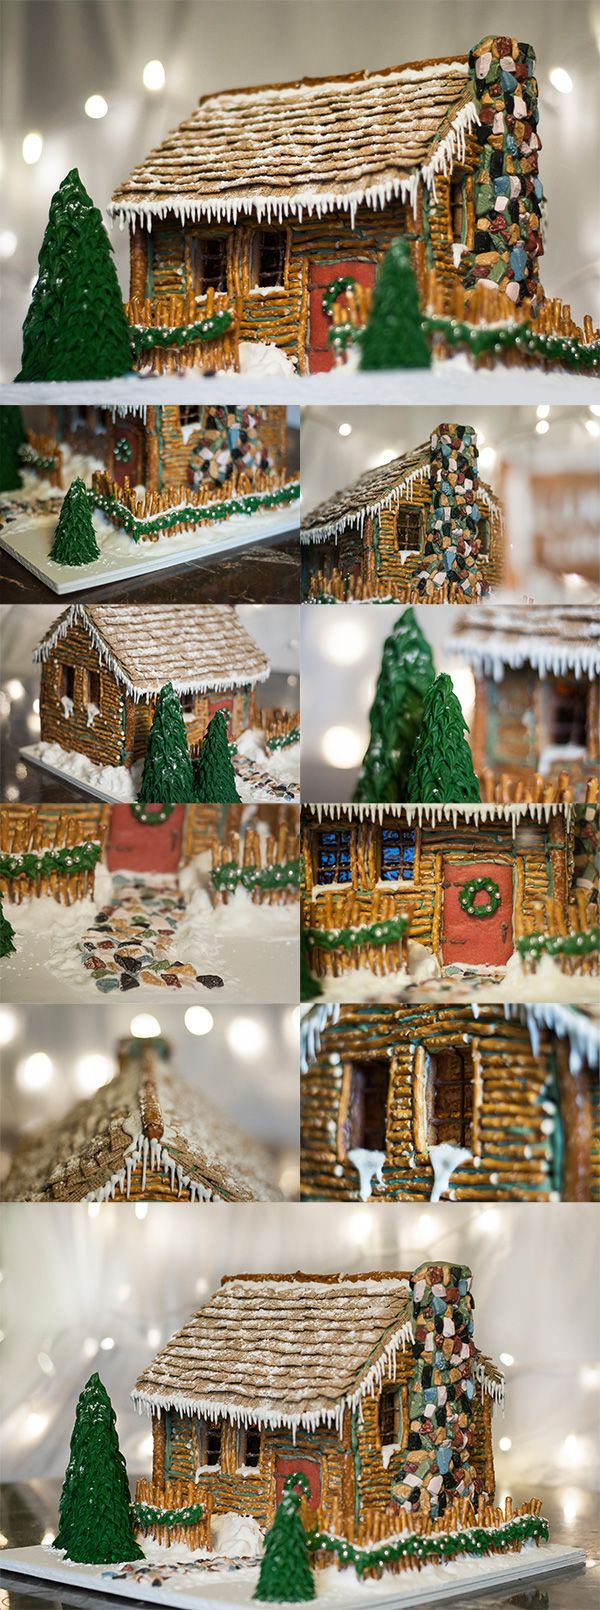 """""""Christmas Log Cabin"""" by Kaitlin L. (Standout Execution). Cute little decoration! Maybe I'll have this someday. (:"""